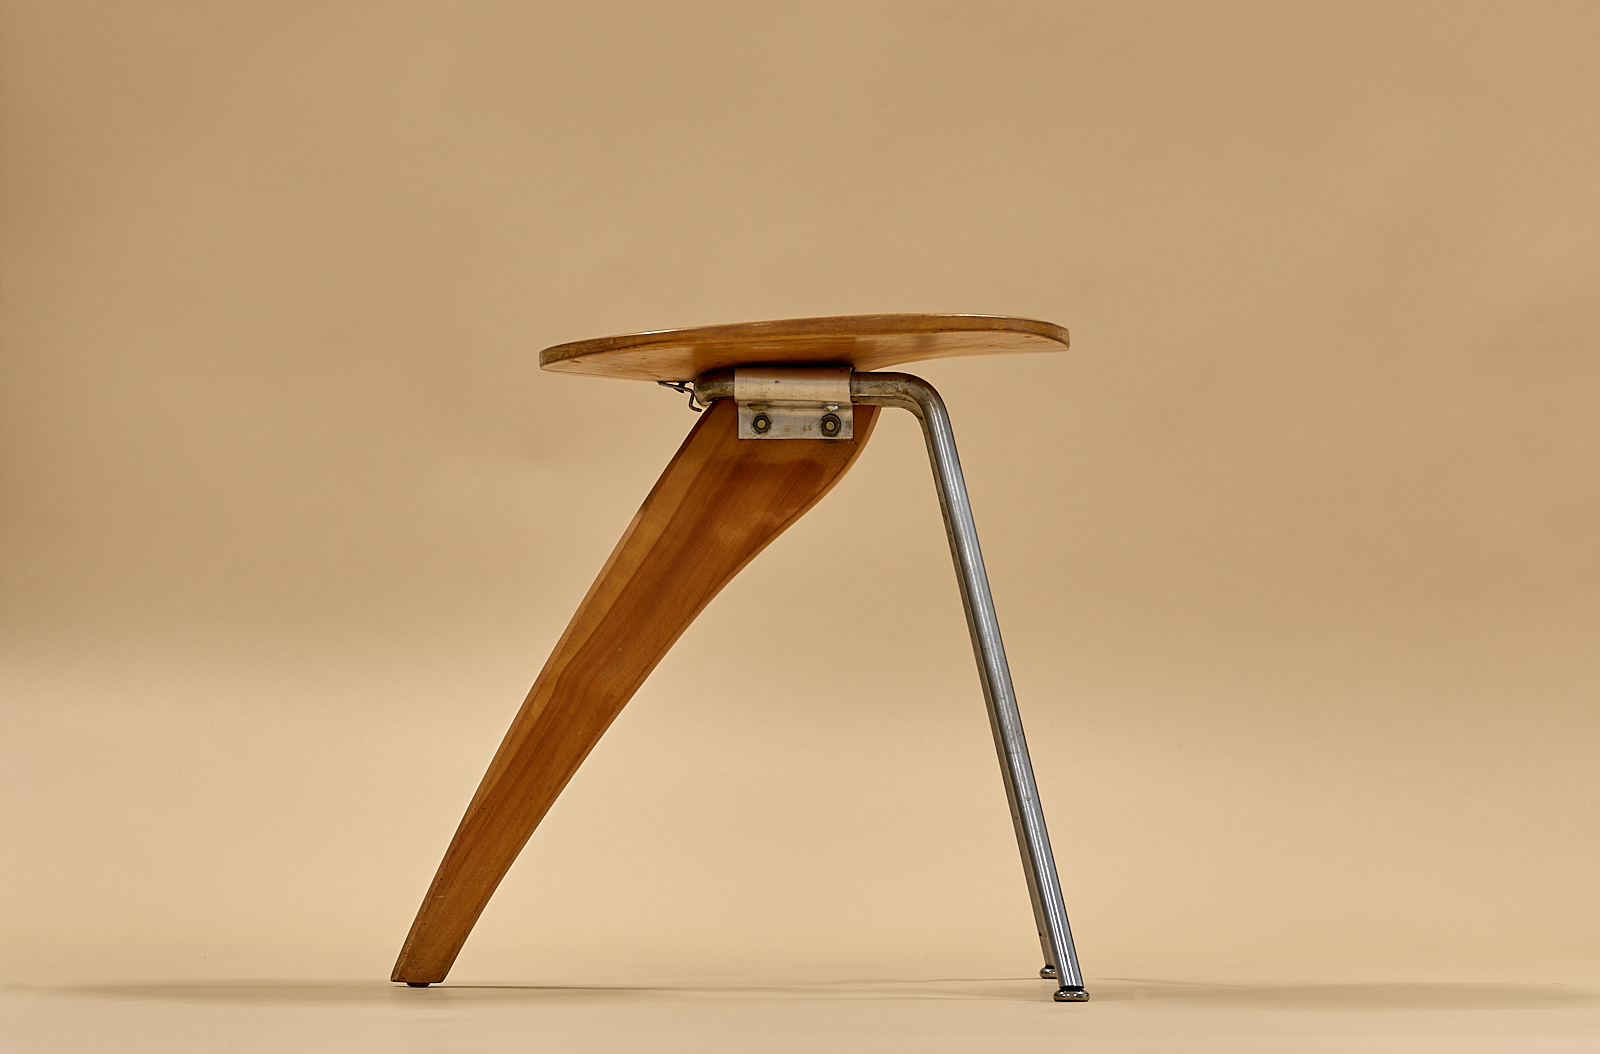 1940s Isamu Noguchi Rudder Table for Herman Miller   Click here for our American Studio Collector Pieces